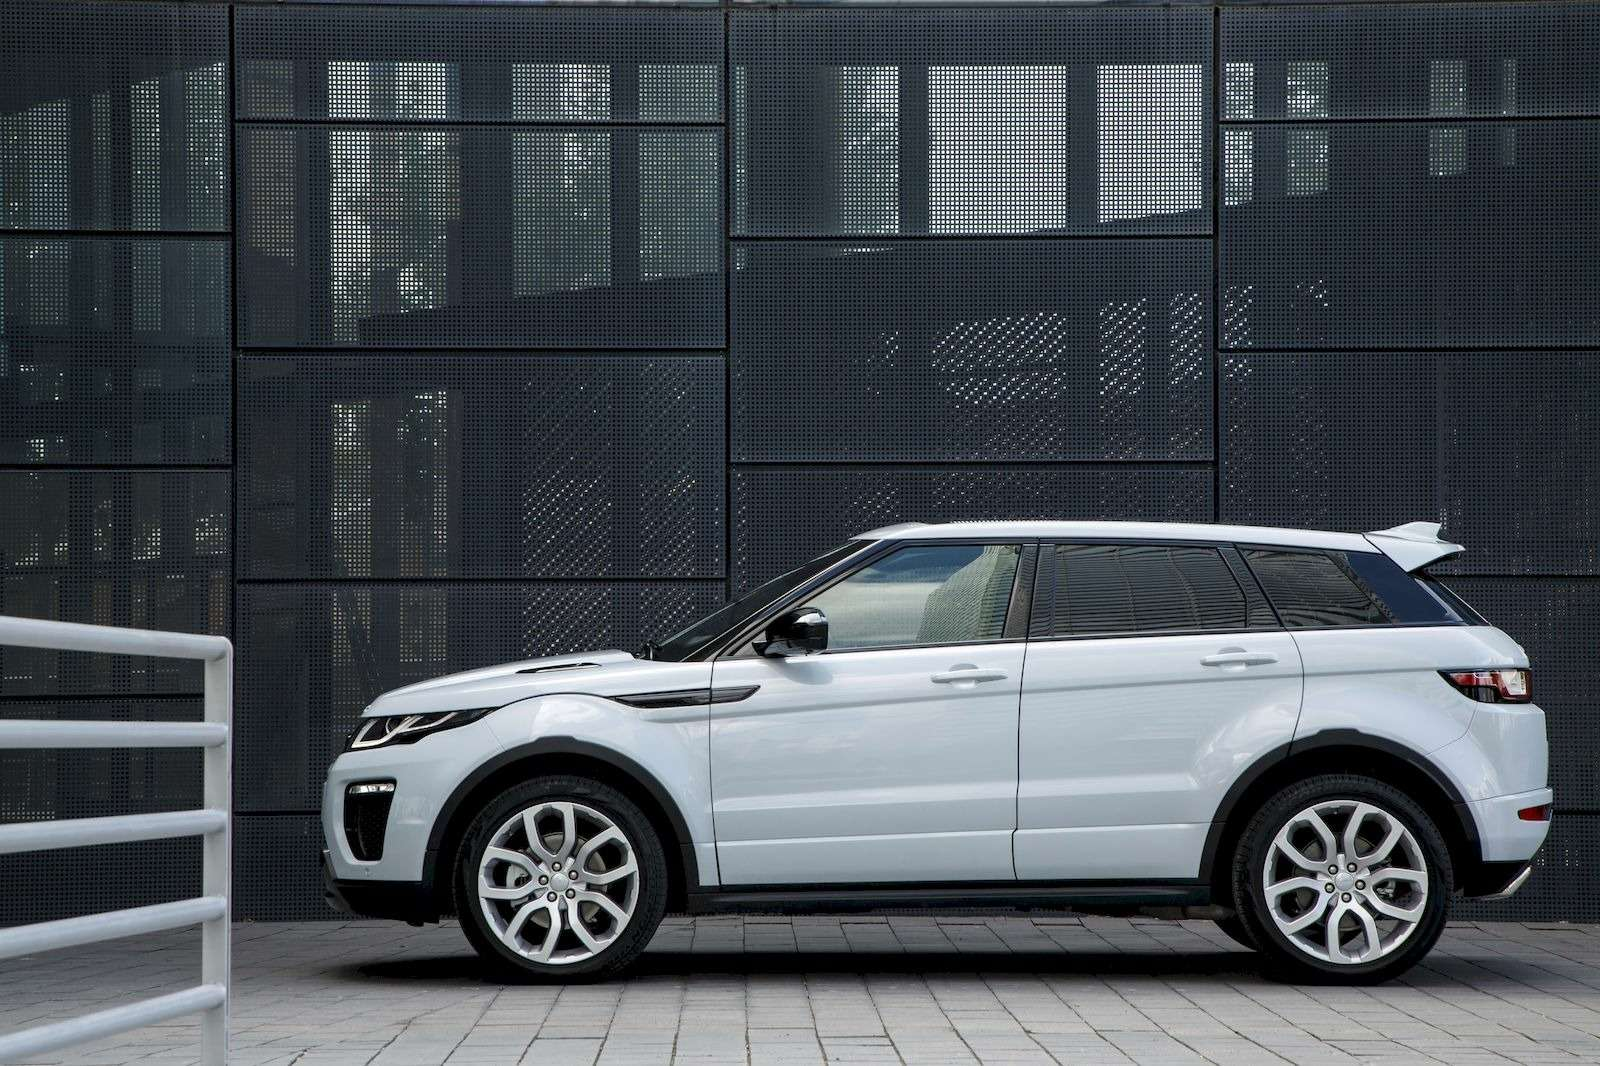 RR_Evoque16MY_4WD_148_result